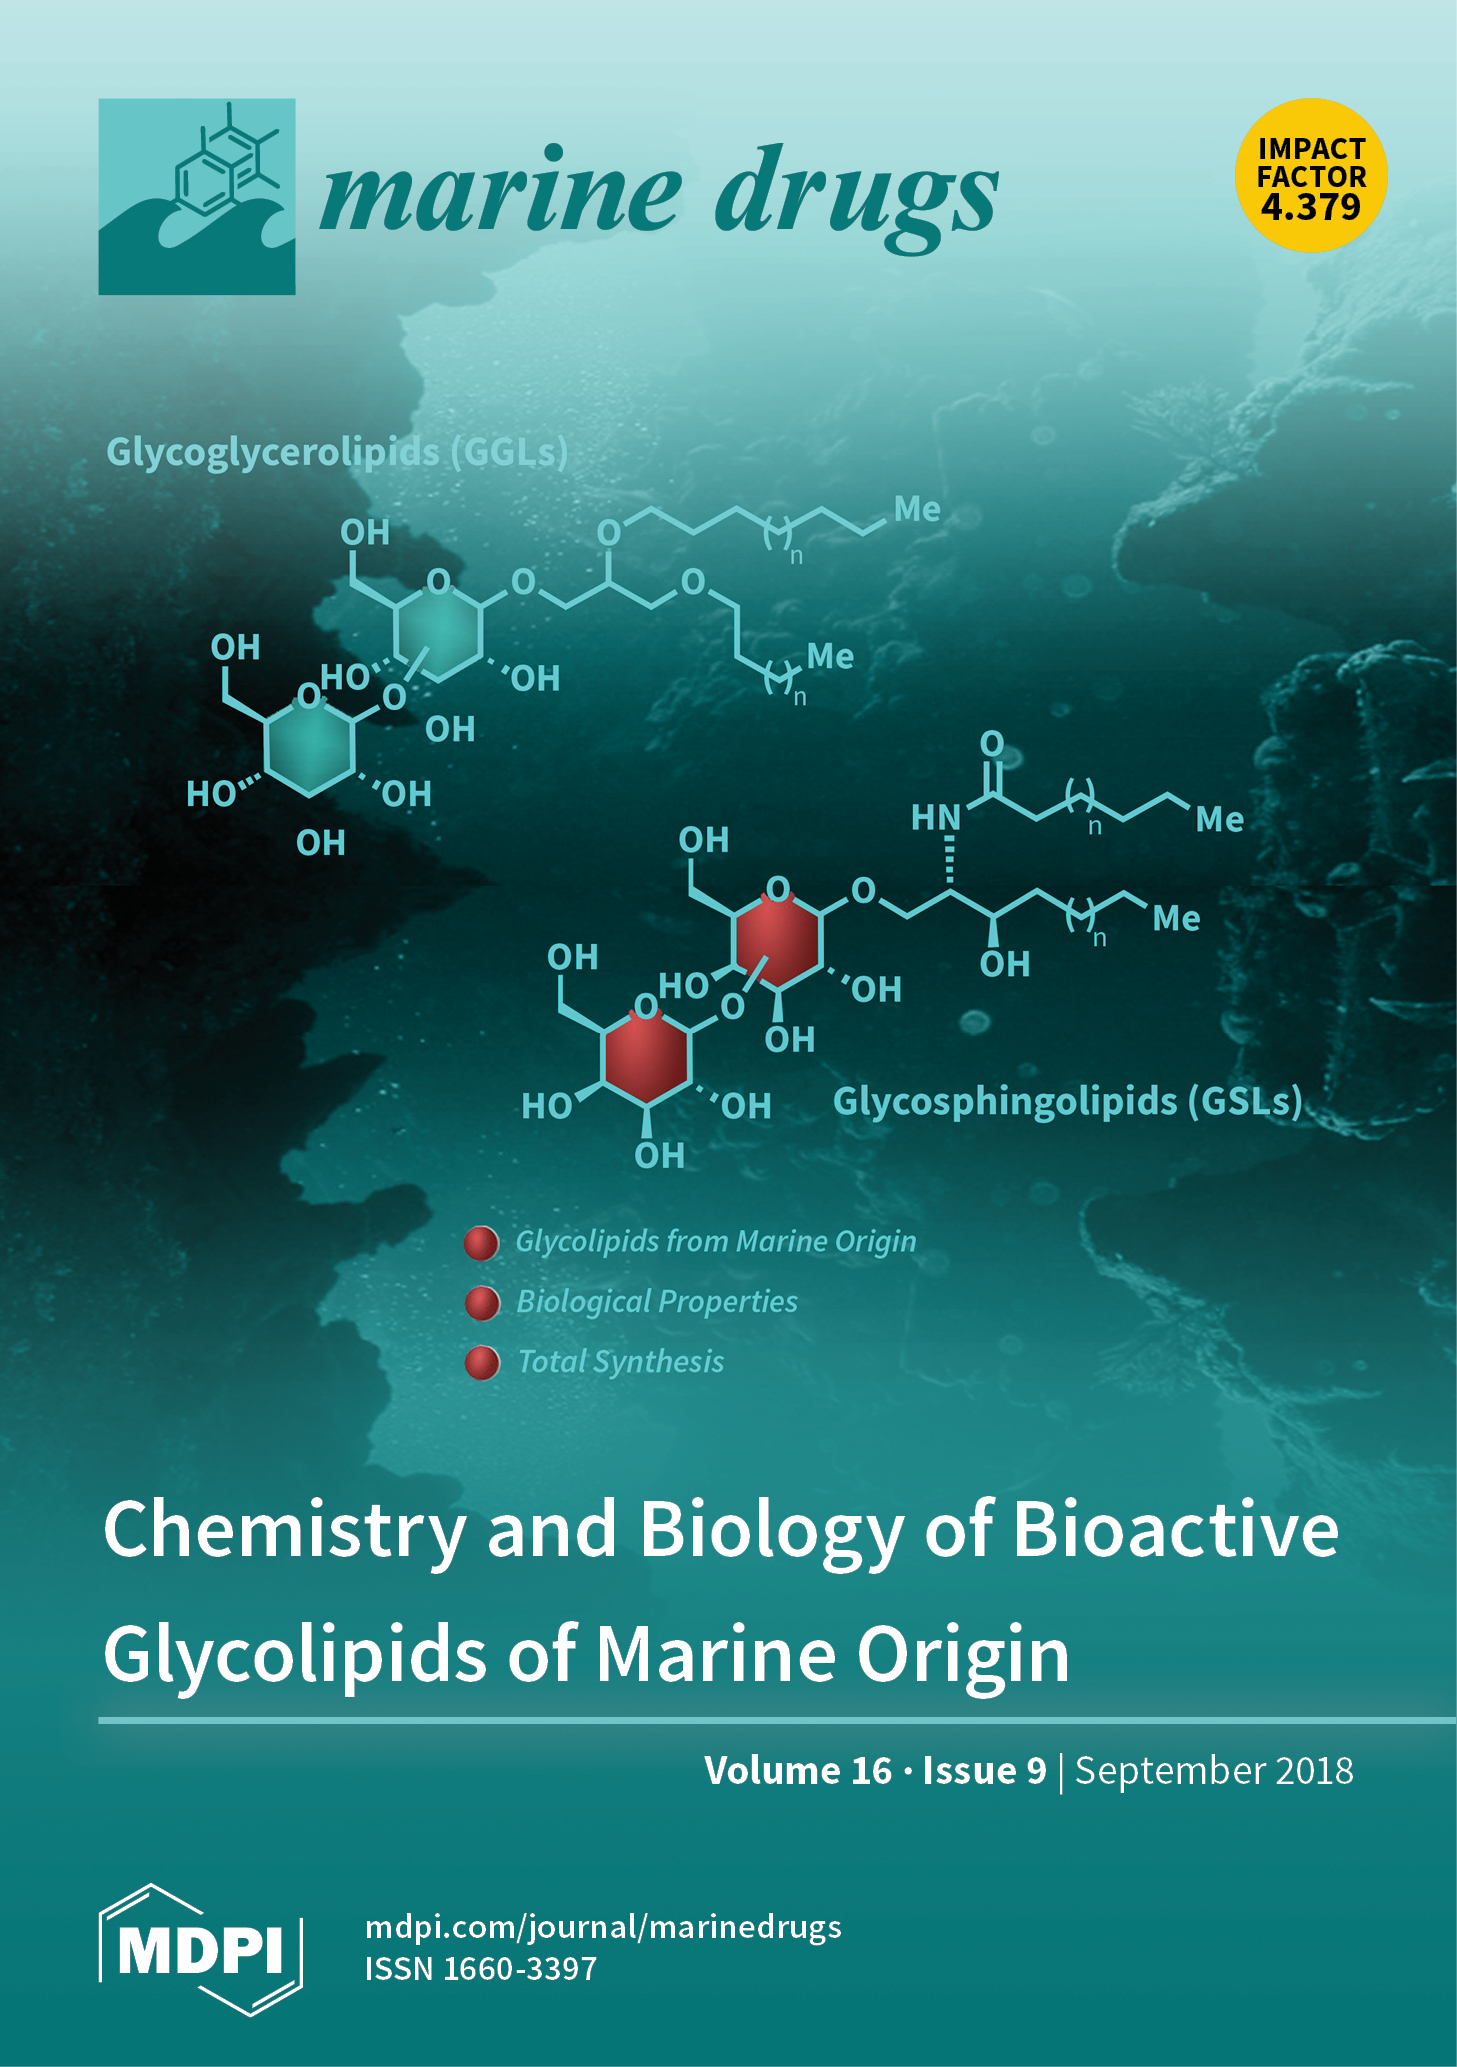 Marine Drugs | September 2018 - Browse Articles